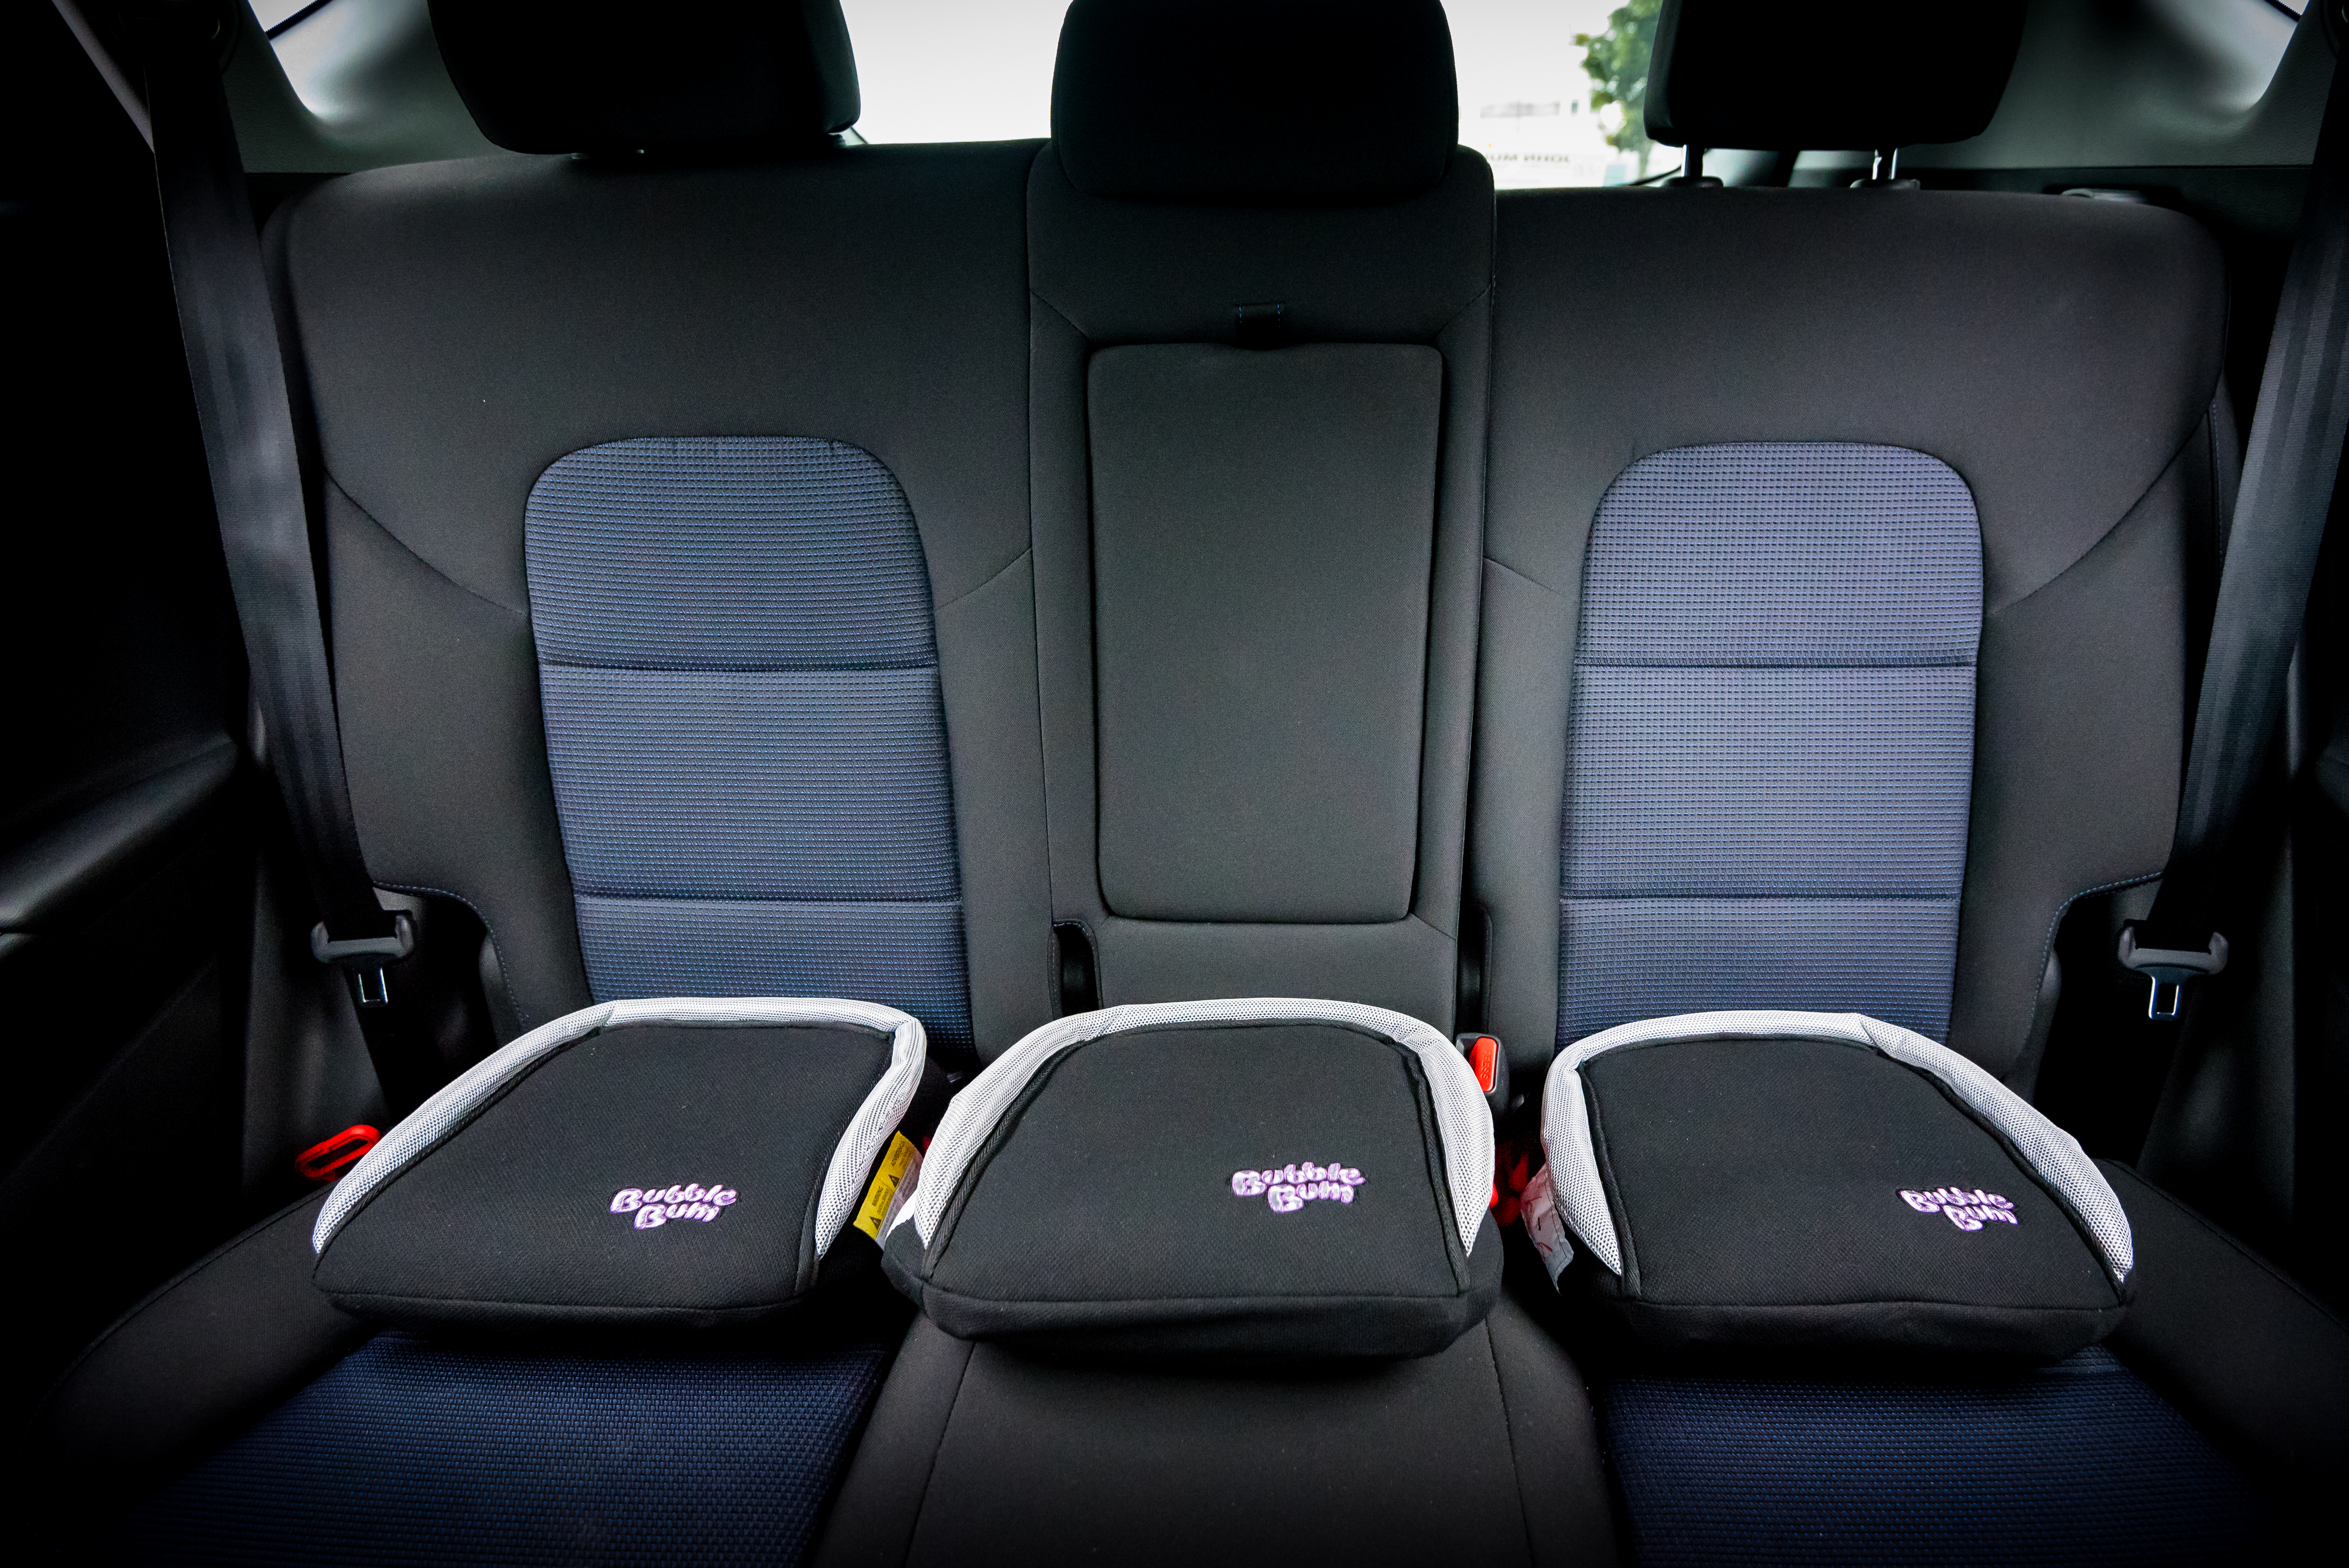 Why Buy A BubbleBum Booster Seat